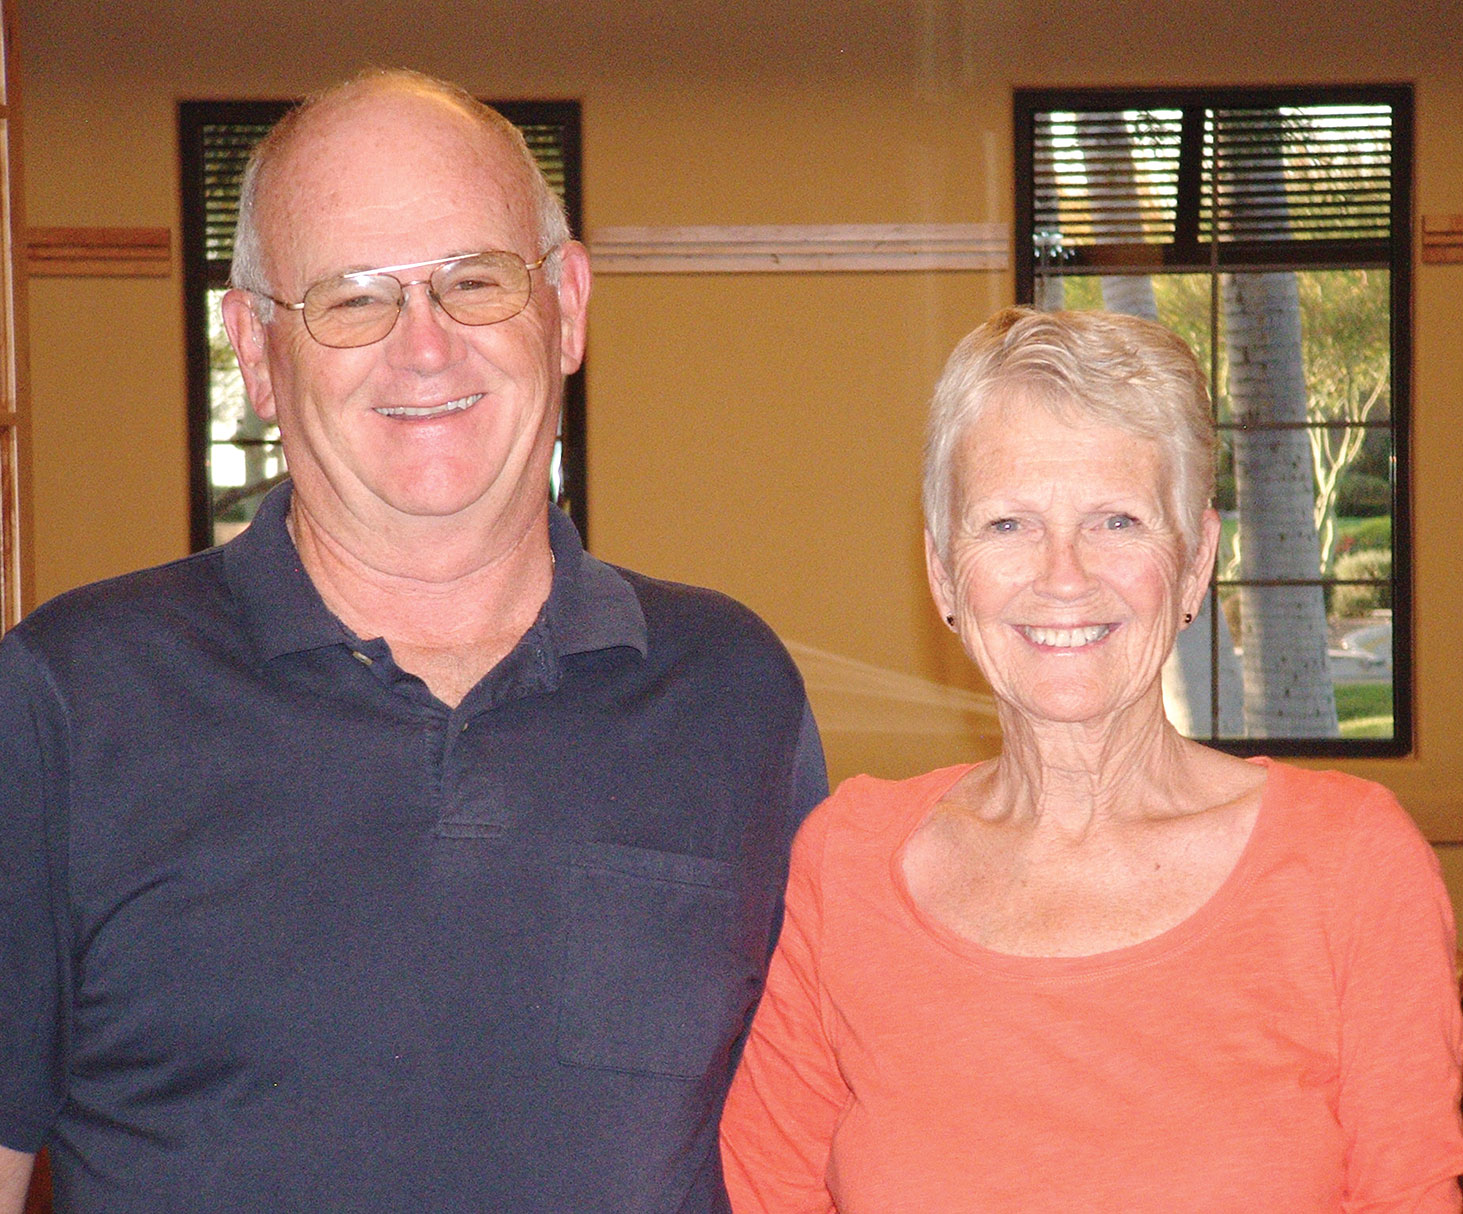 Third place, Rick and Nancy Taylor